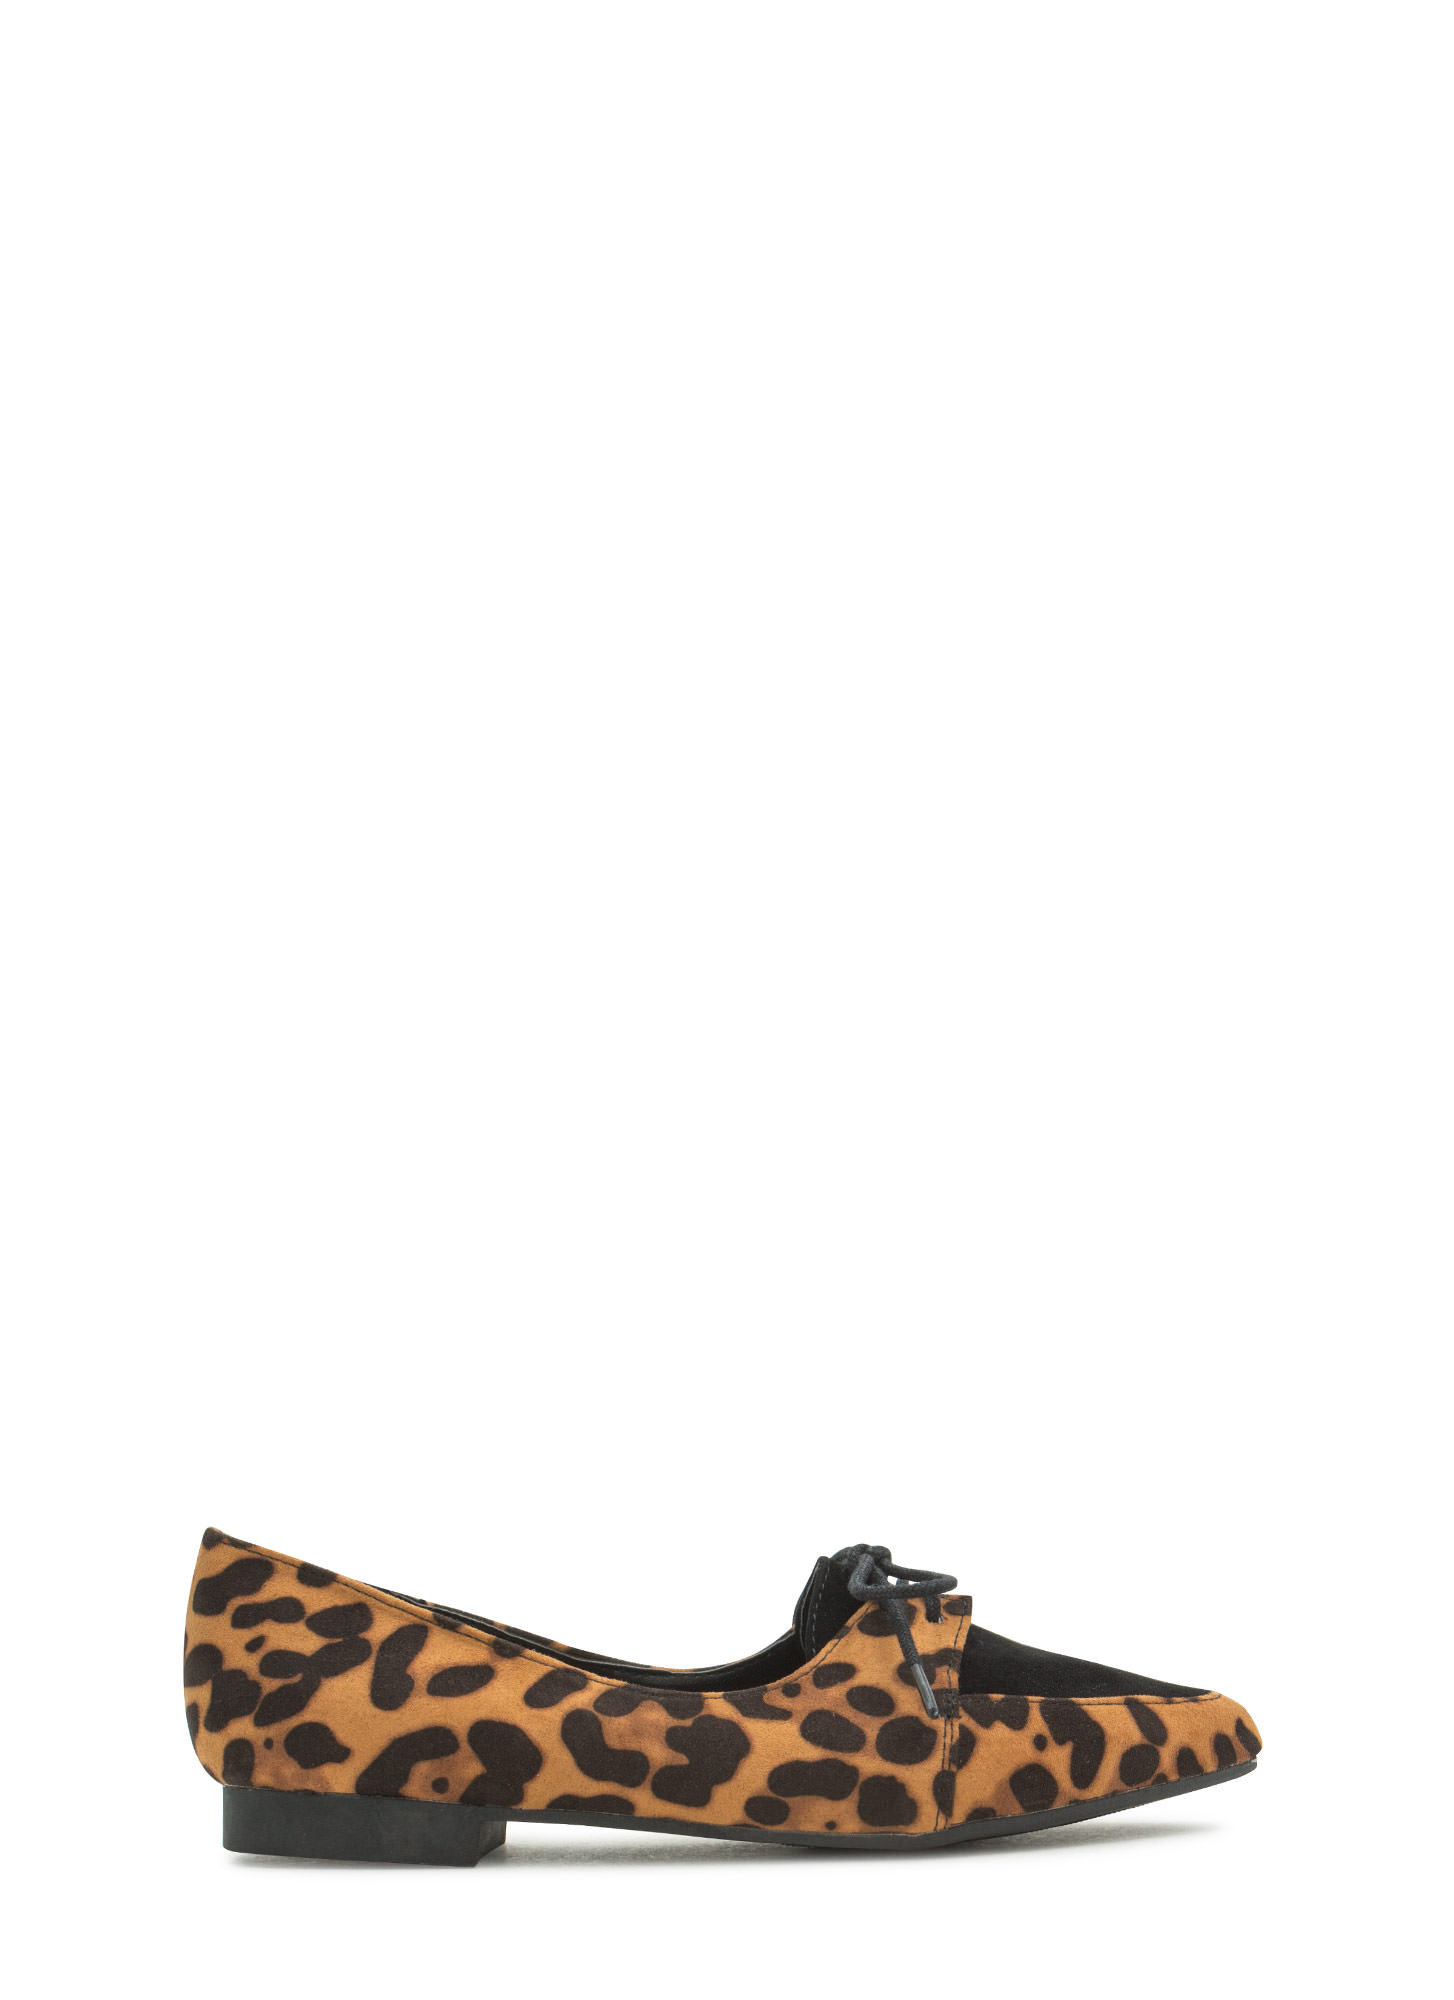 Get To The Point Lace-Up Jazz Flats LEOPARD